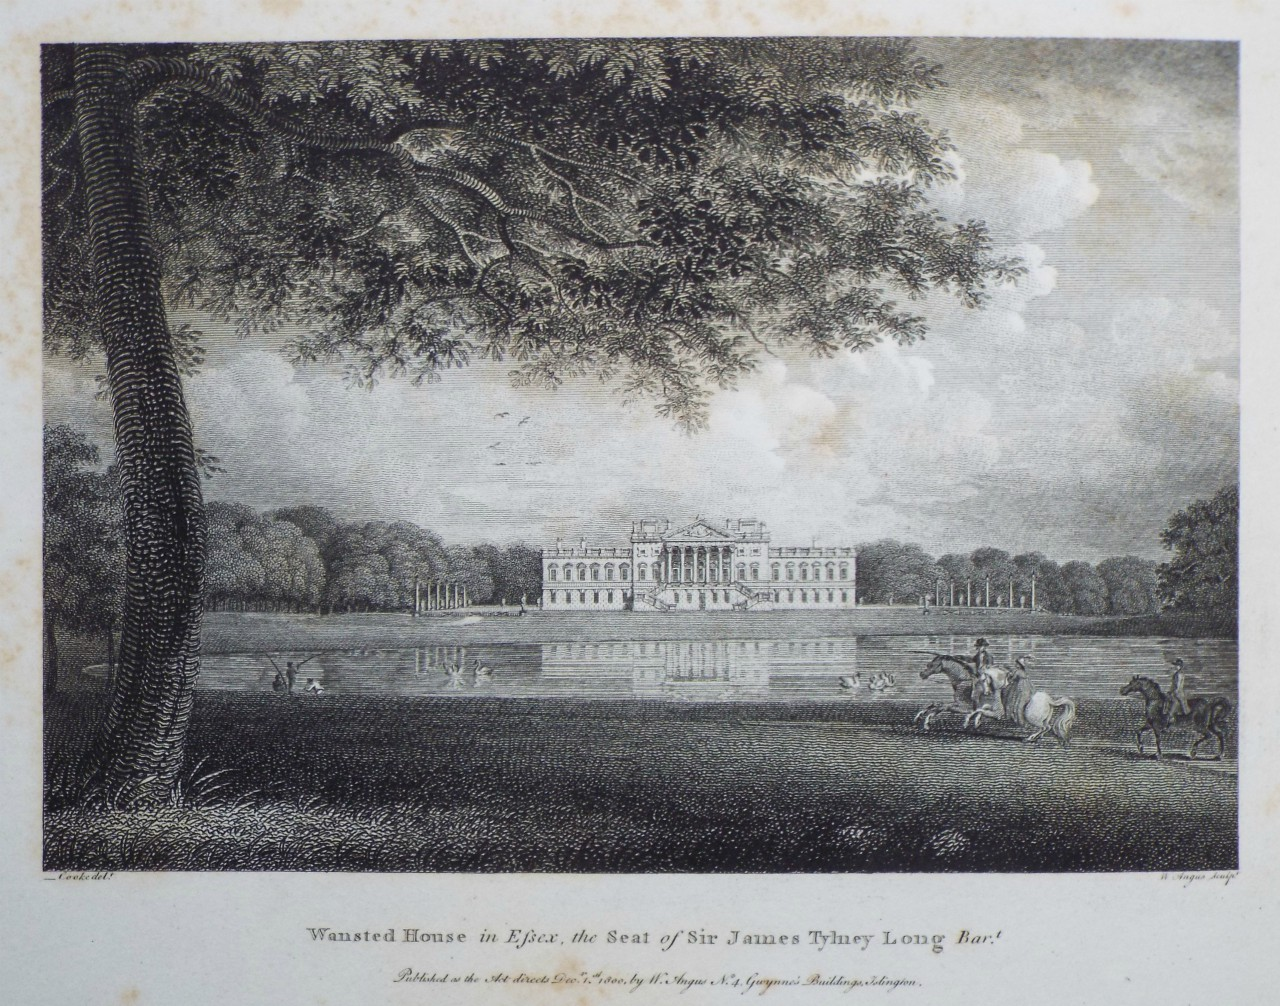 Print - Wanstead House in Essex, the Seat of Sir James Tylney Long Bart. - Angus